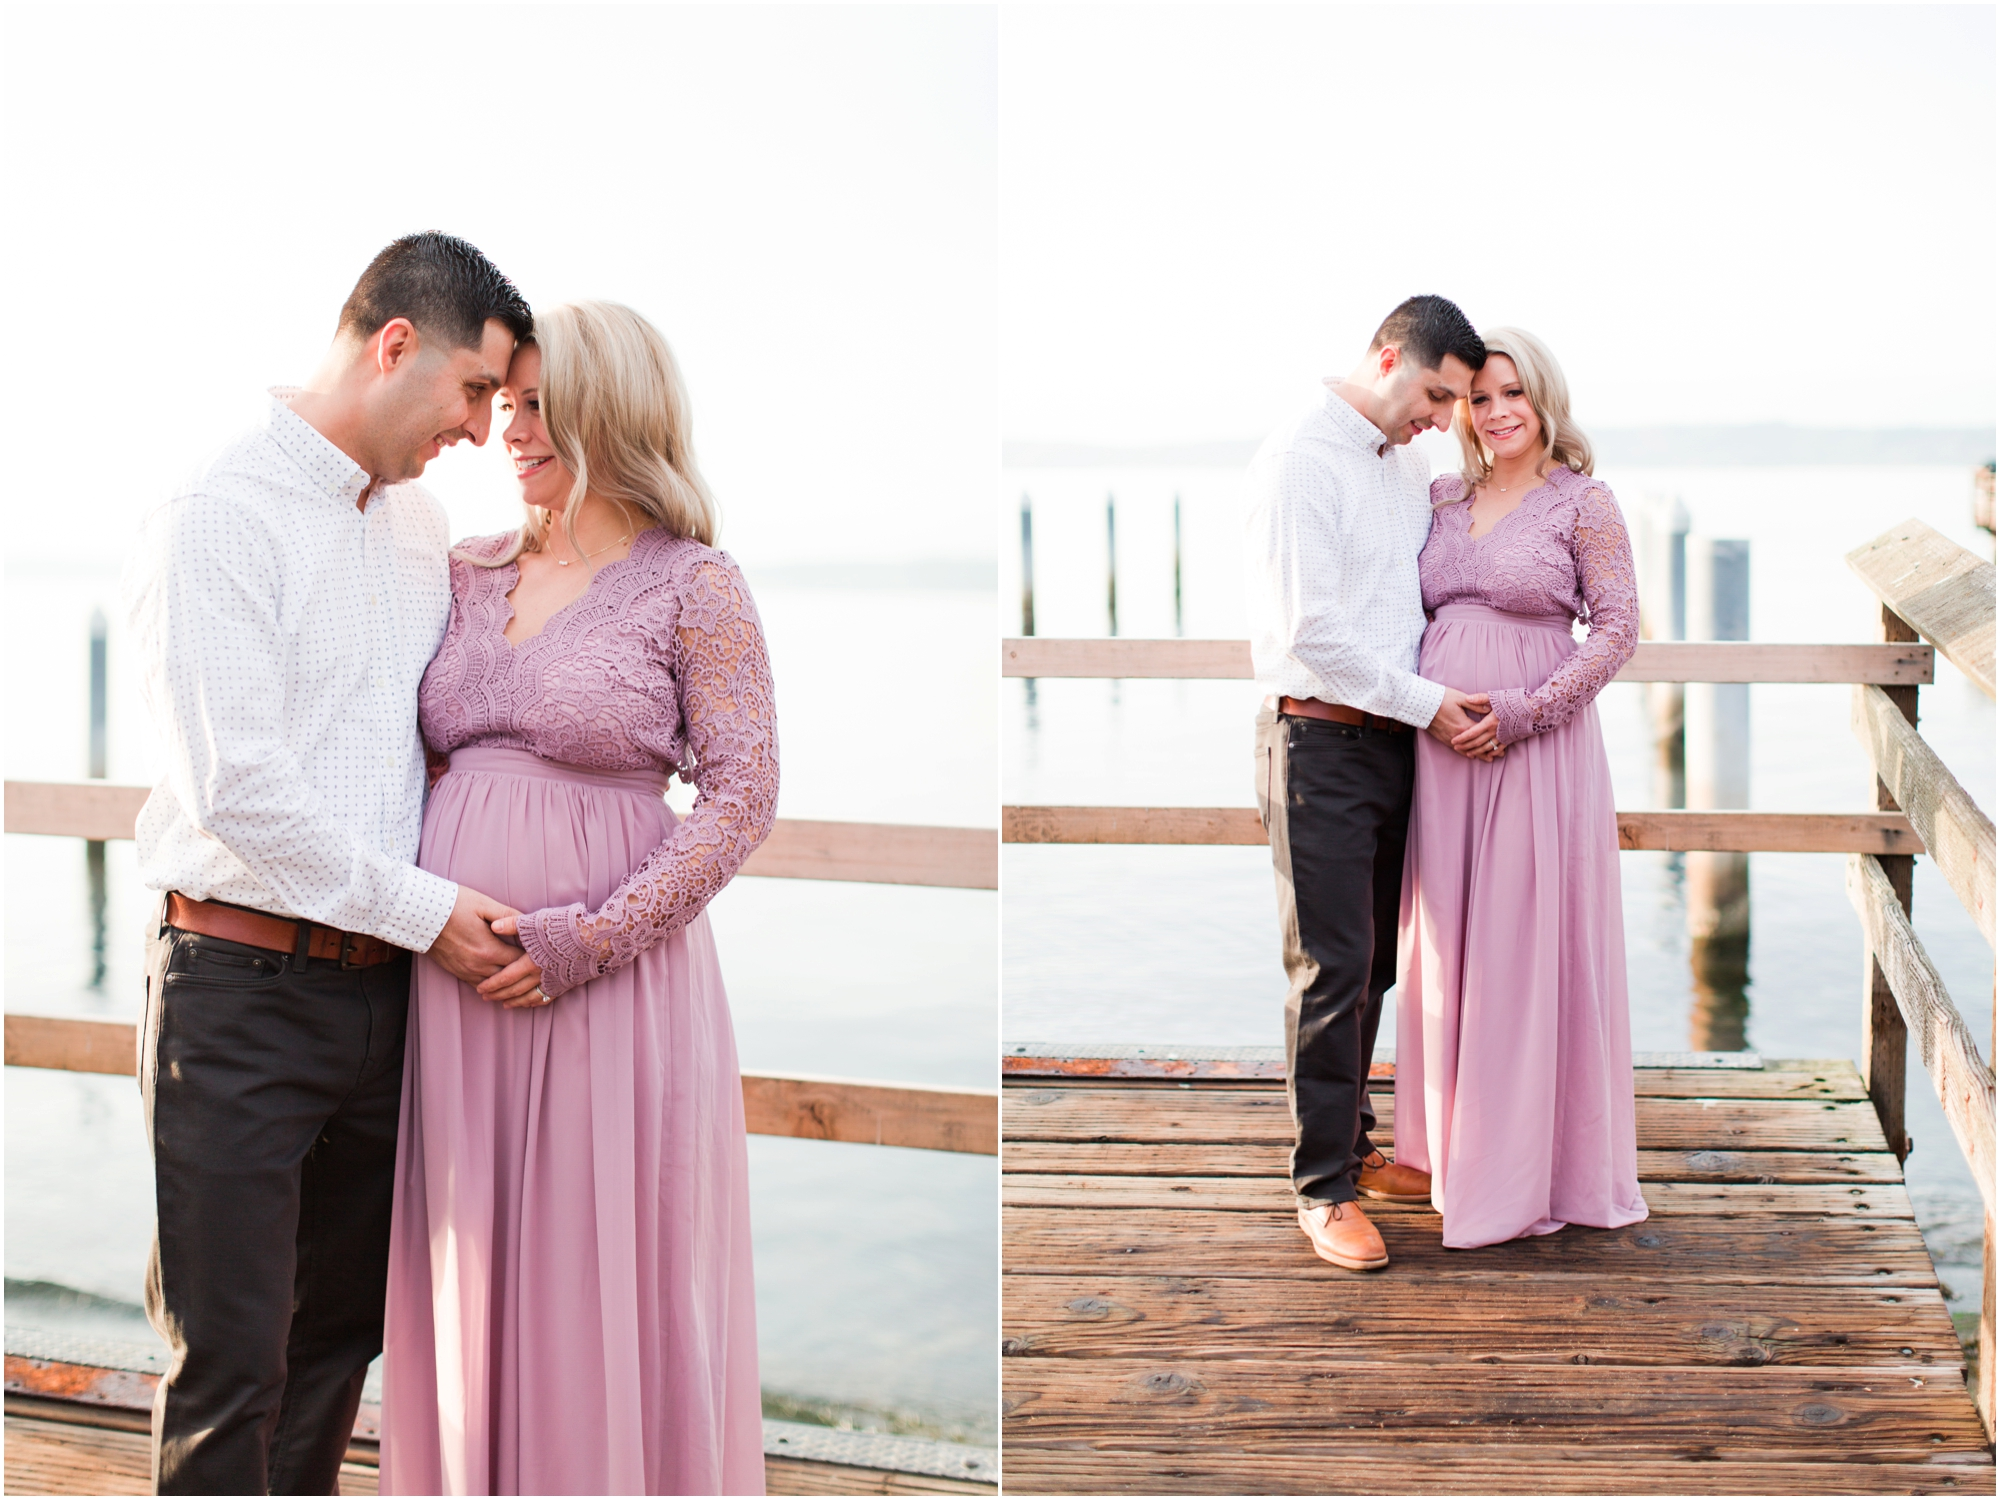 Maternity photos by Briana Calderon Photography based in the Greater Seattle & Tacoma, WA_0969.jpg